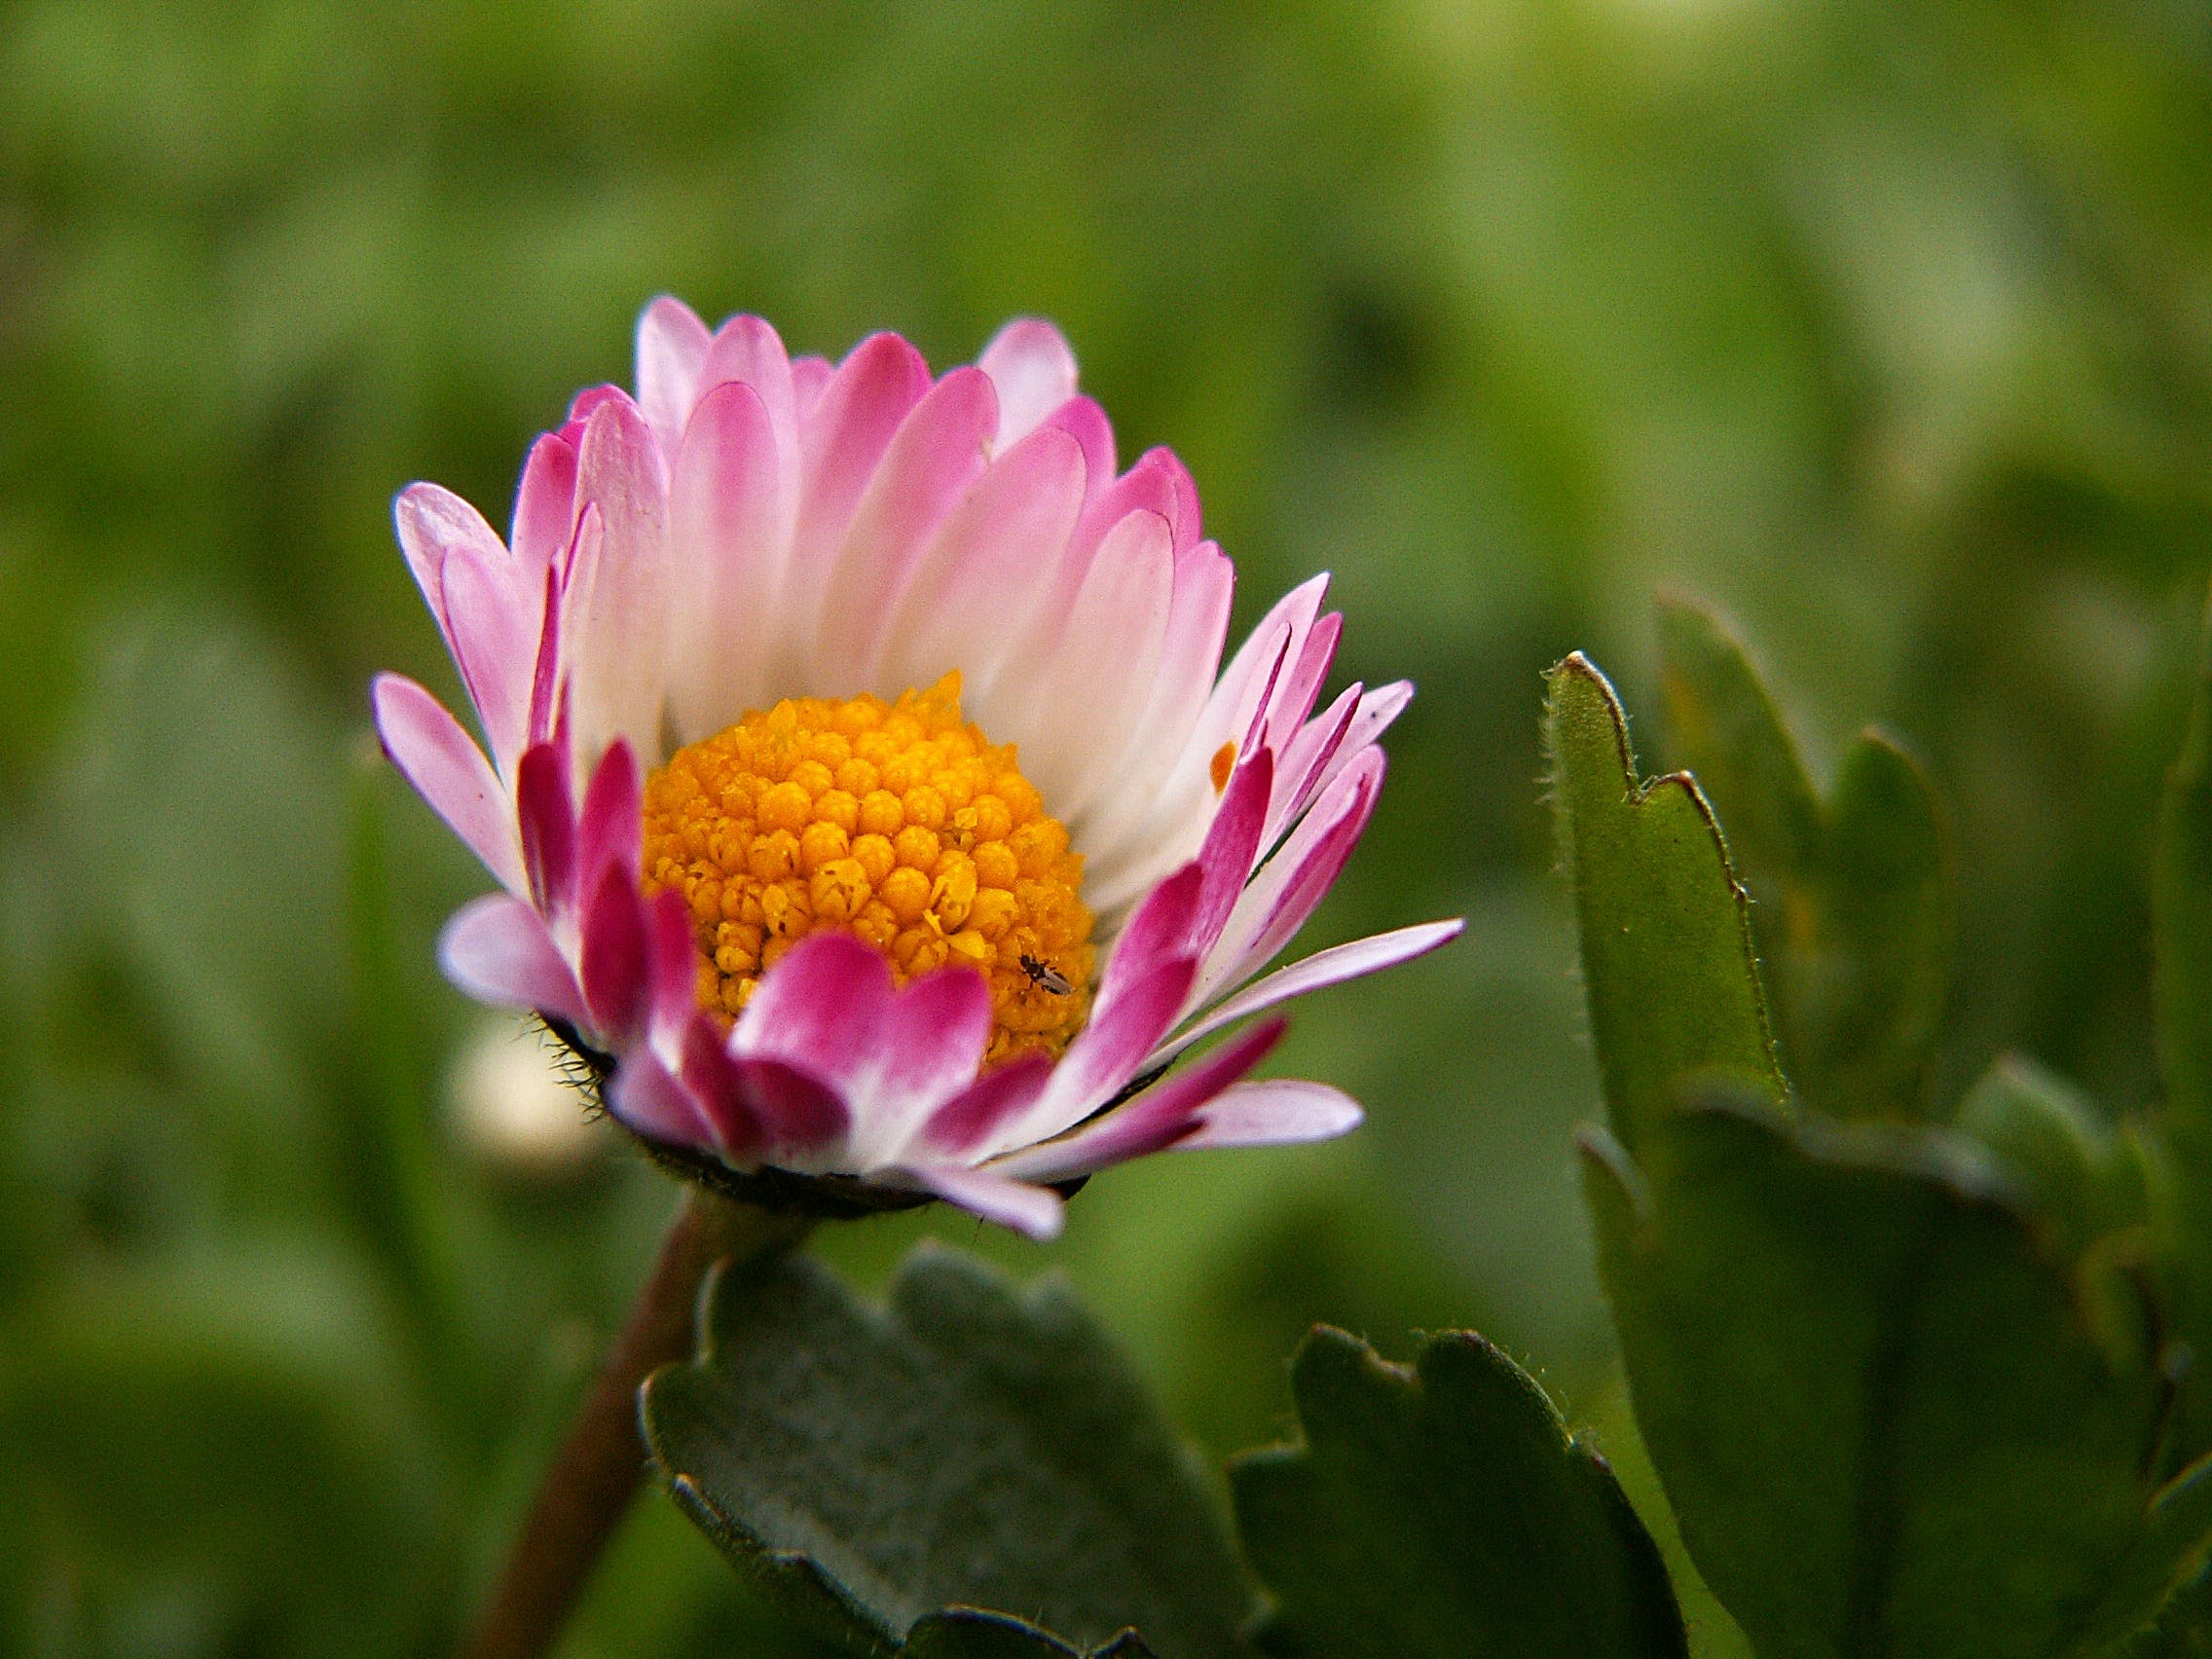 Pink White and Yellow Flower